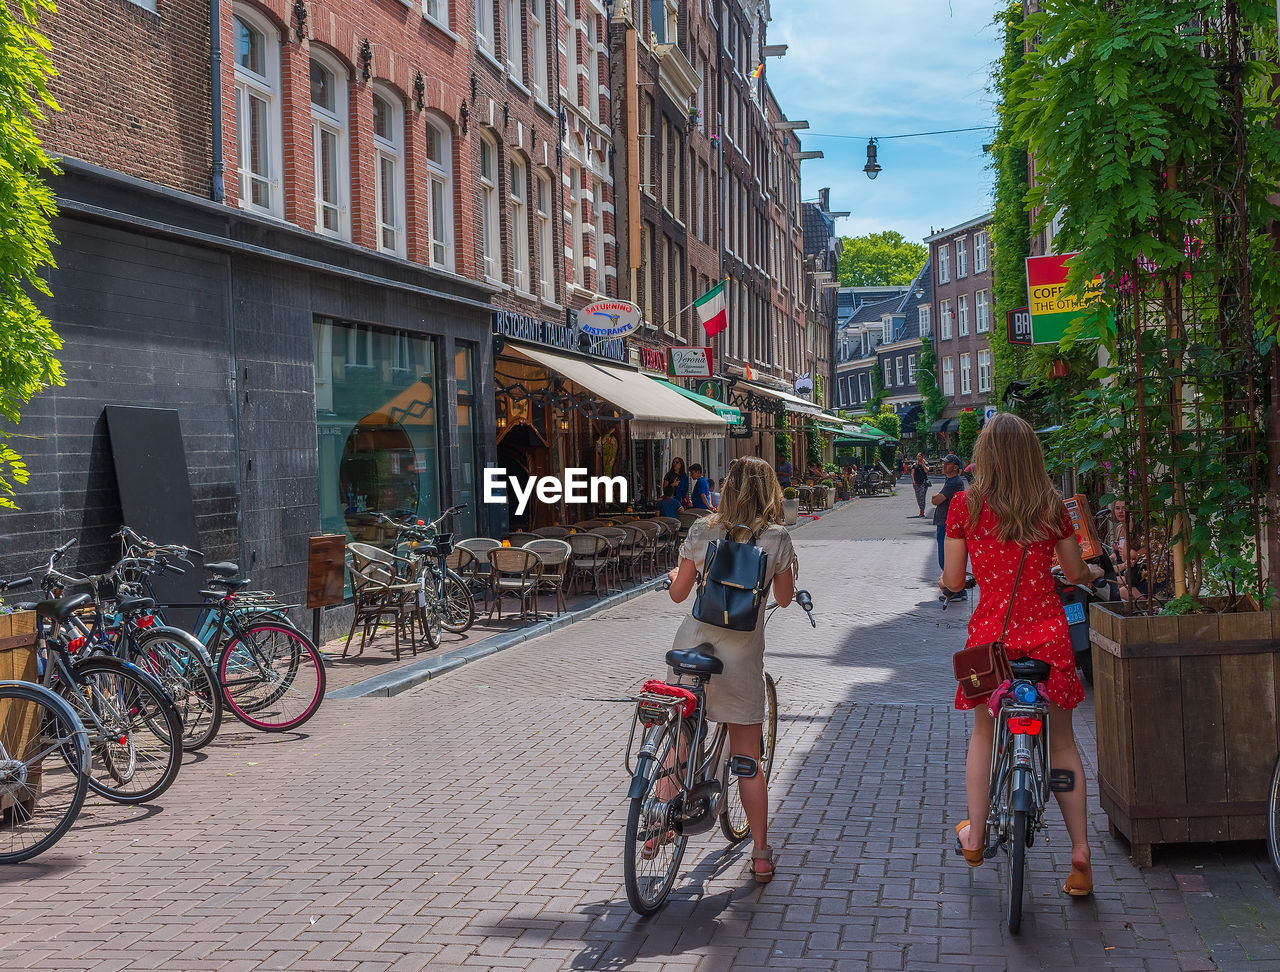 building exterior, bicycle, transportation, architecture, city, mode of transportation, real people, built structure, land vehicle, street, group of people, lifestyles, women, people, day, building, leisure activity, adult, incidental people, men, outdoors, riding